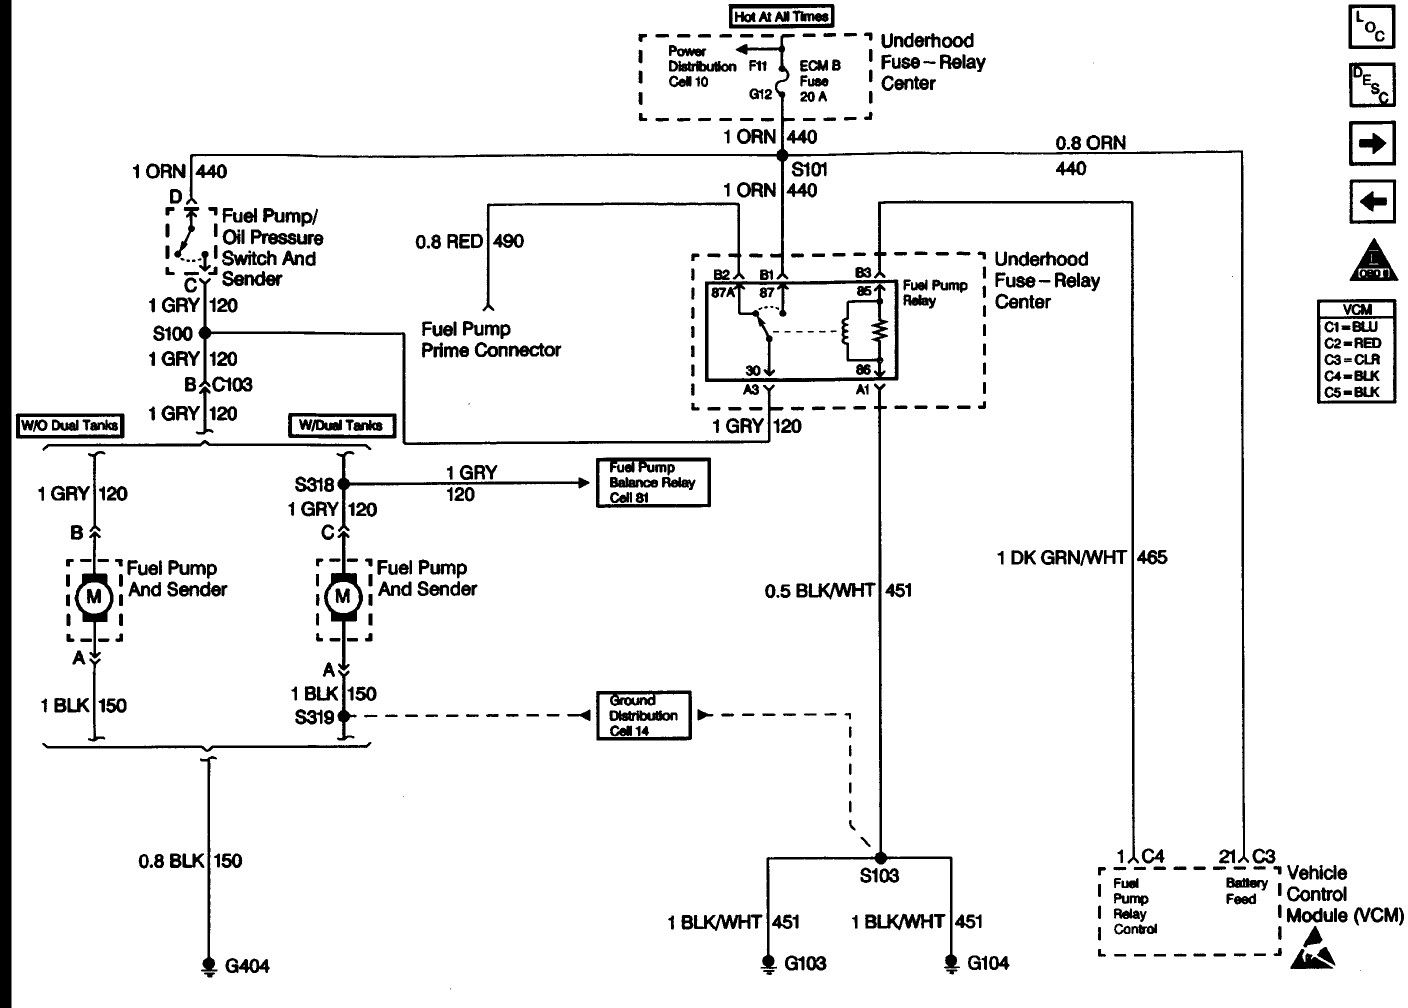 Wiring Diagram For 1979 Gmc Sierra 1500